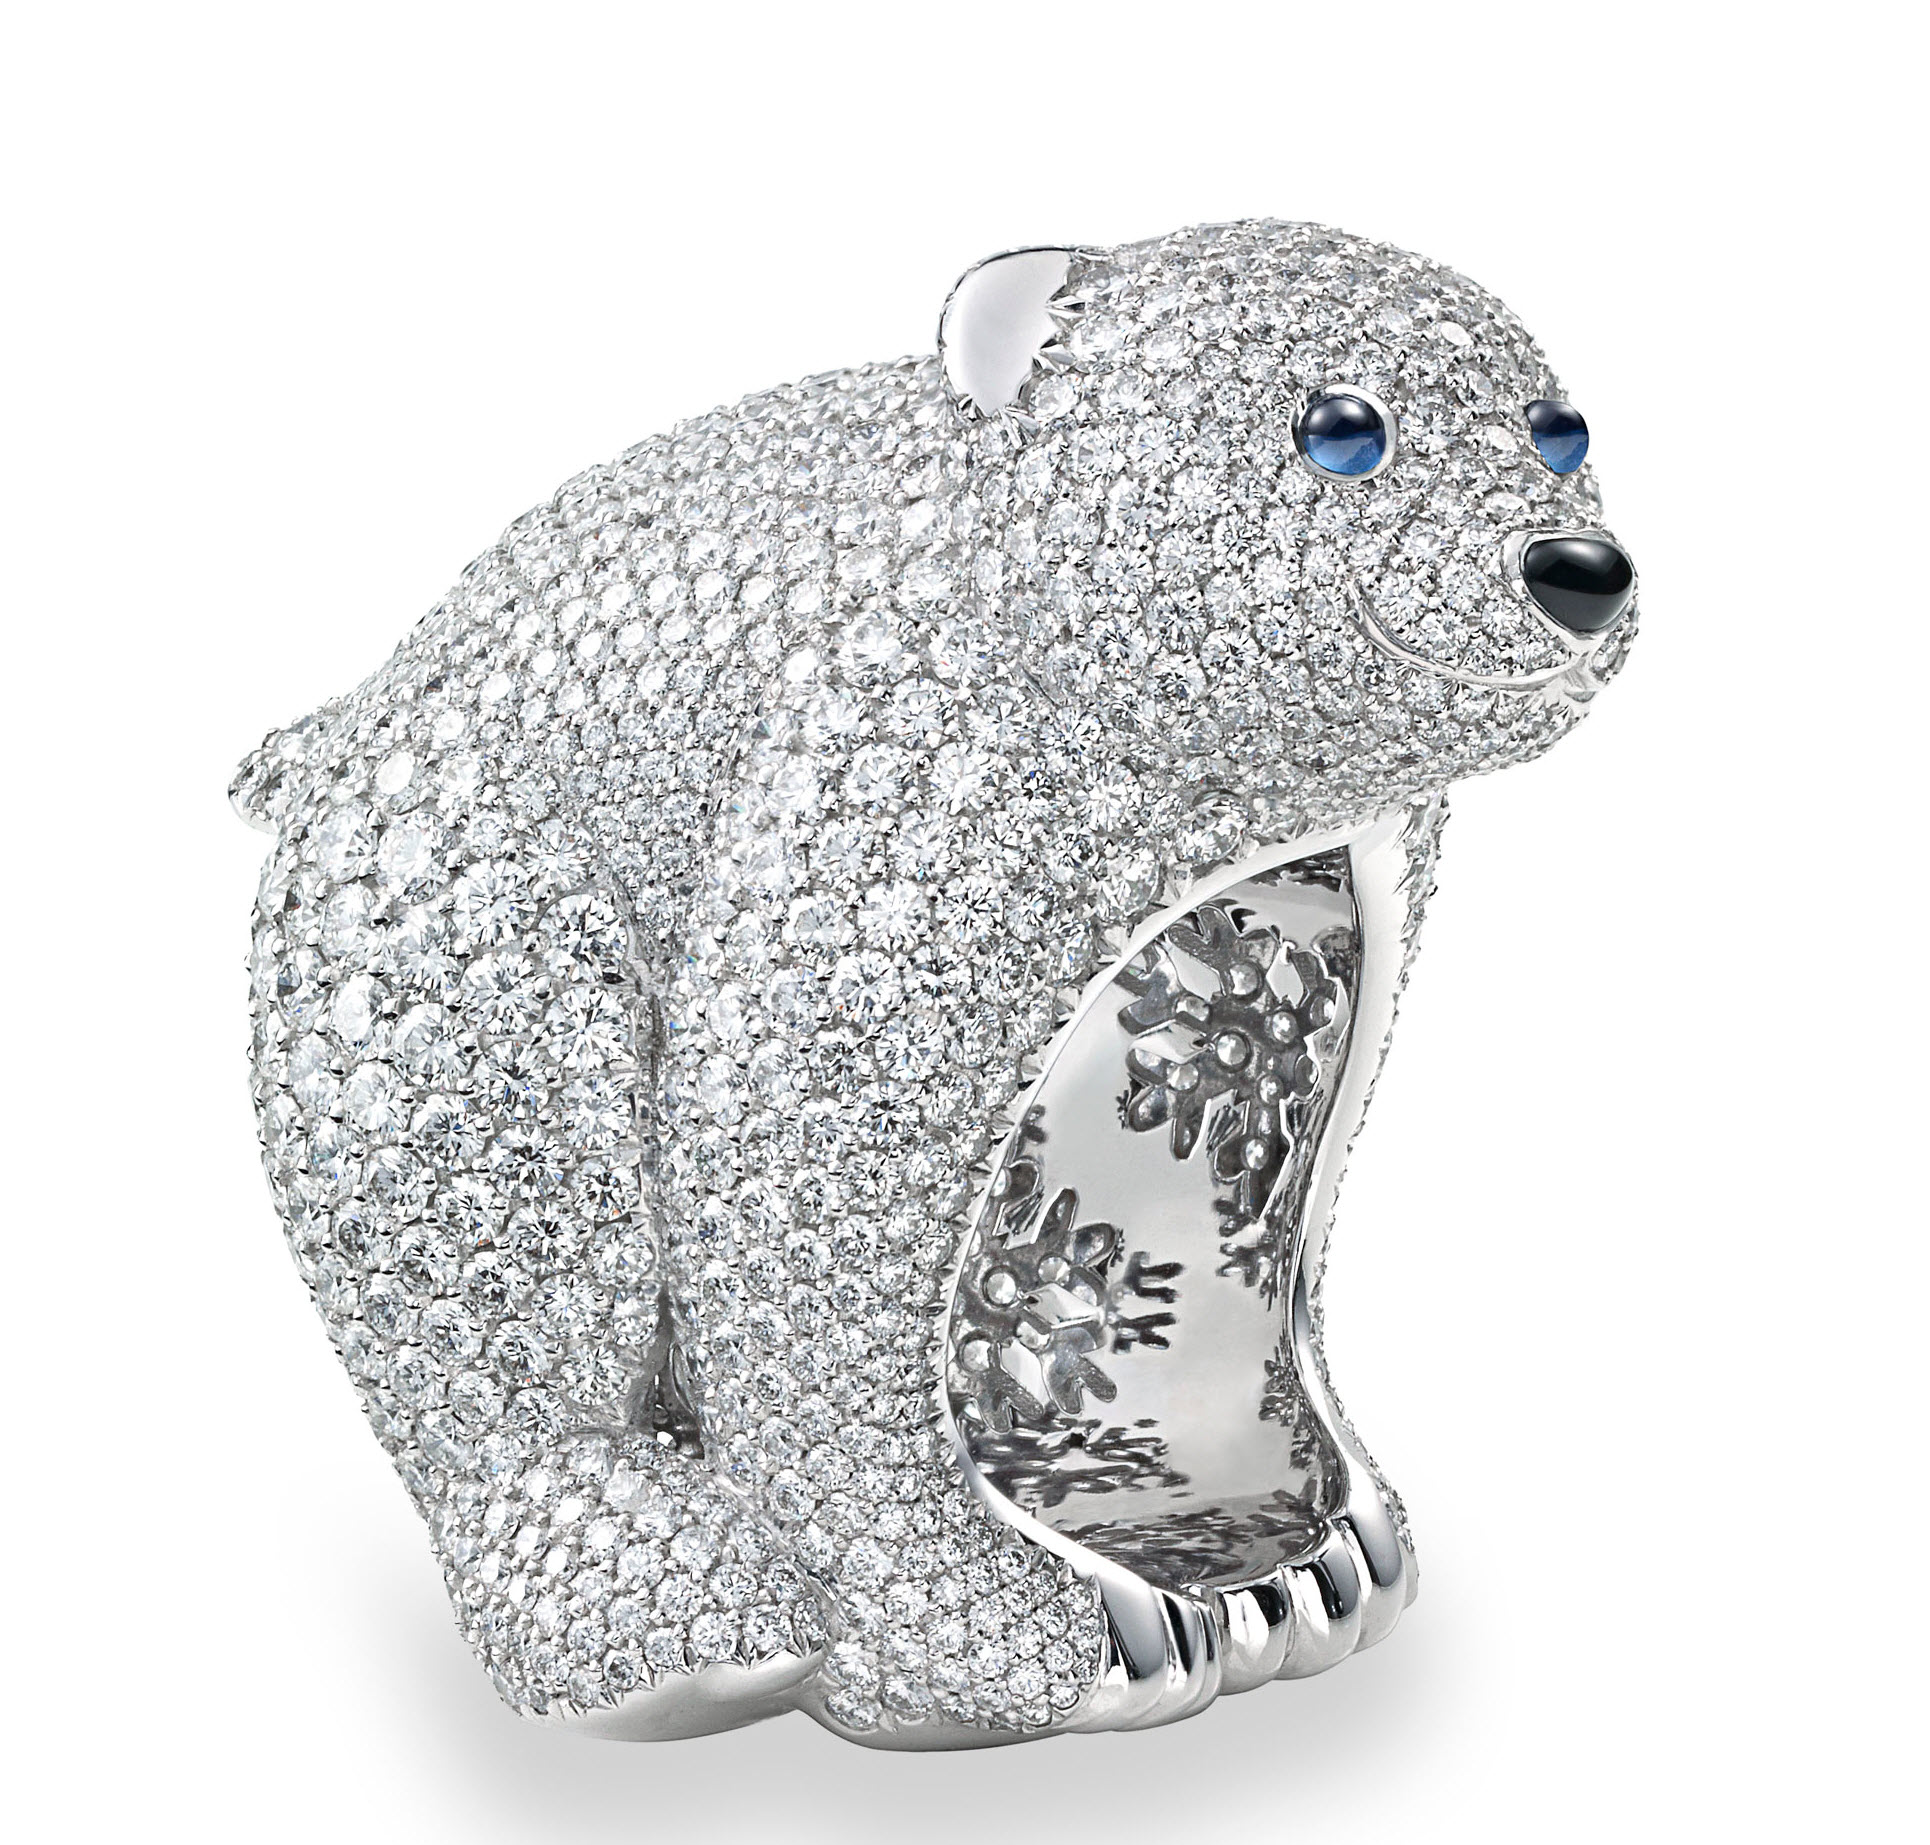 en gold us h risson polar bear hans ring diamonds white usa saphirres the diamond hedgehog boucheron